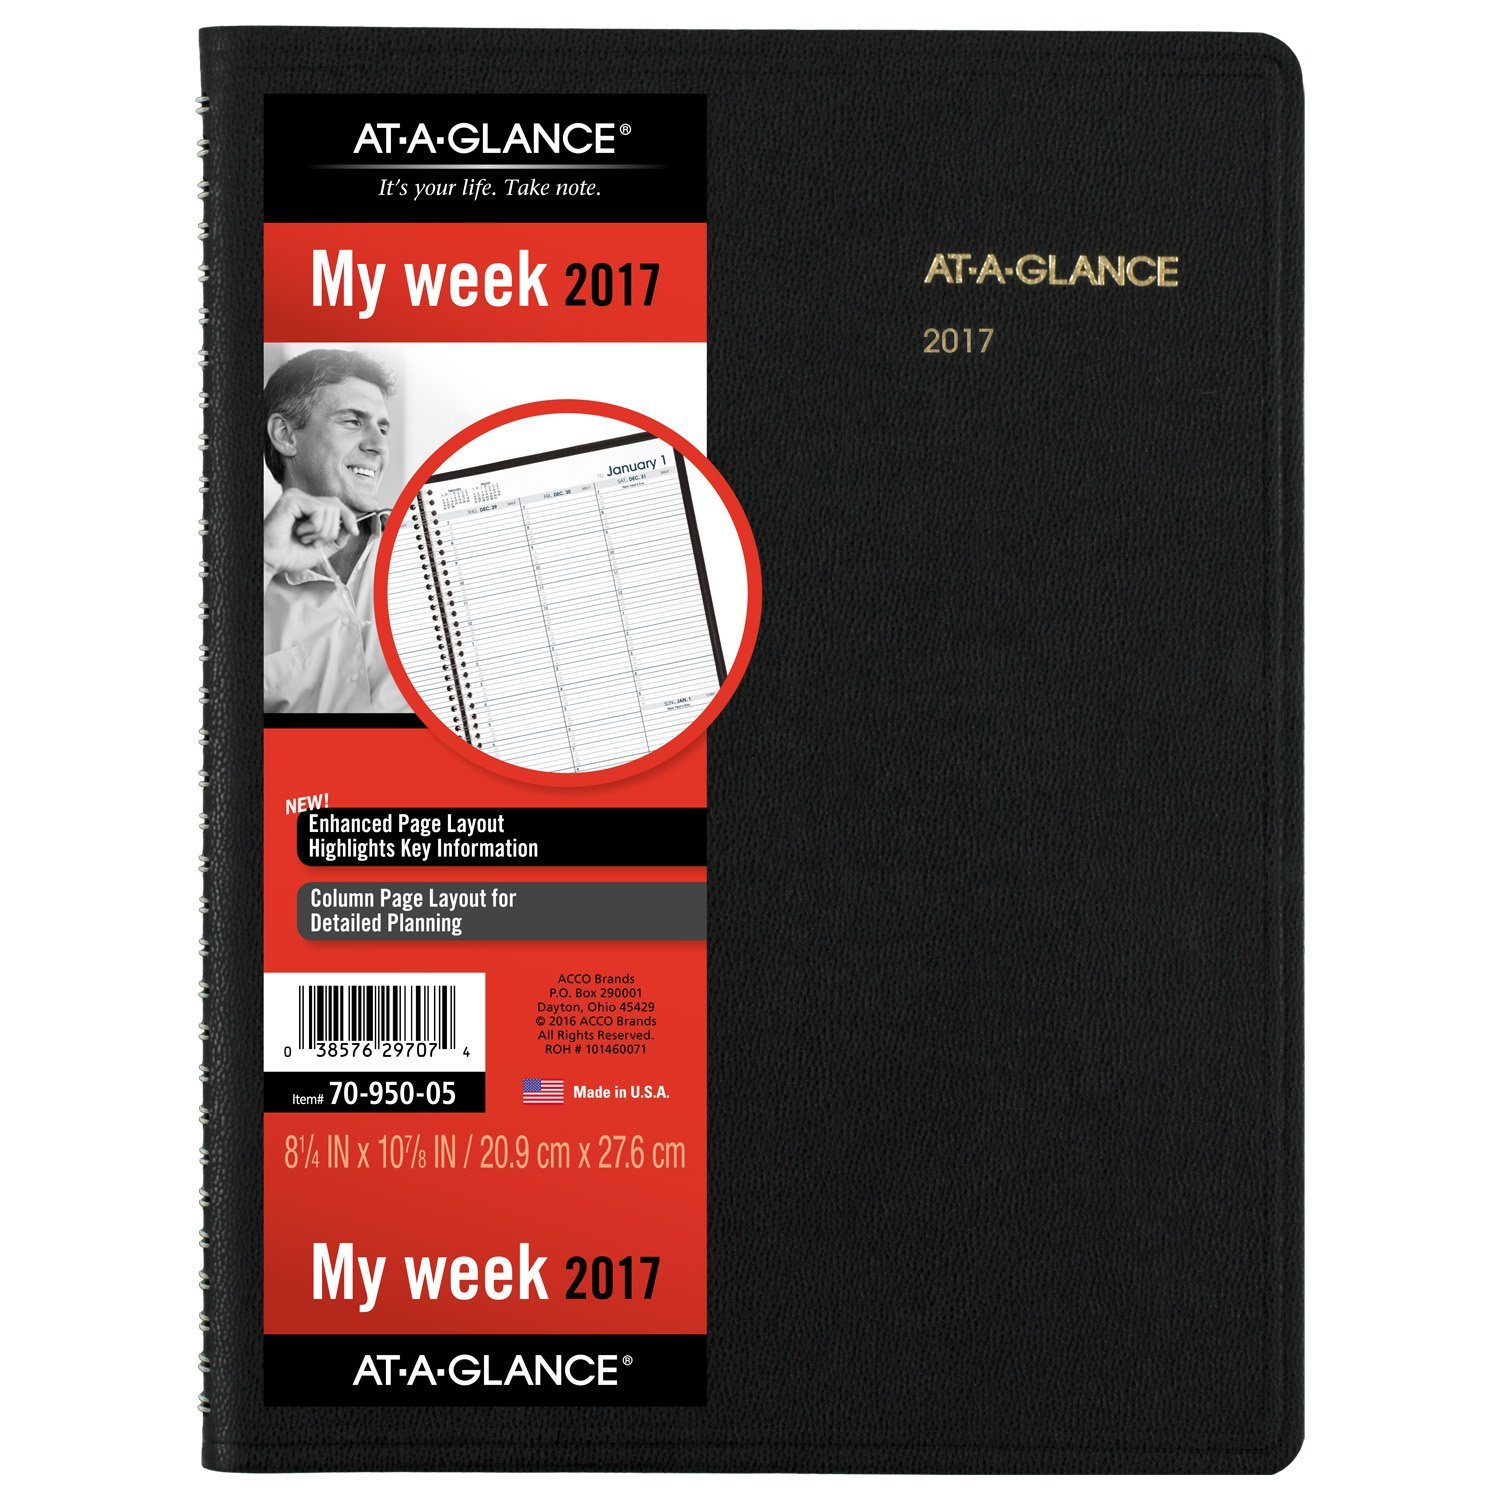 AT-A-GLANCE Weekly Appointment Book / Planner 2017, 8-1/4'' x 10-7/8'', Black (70-950-05)